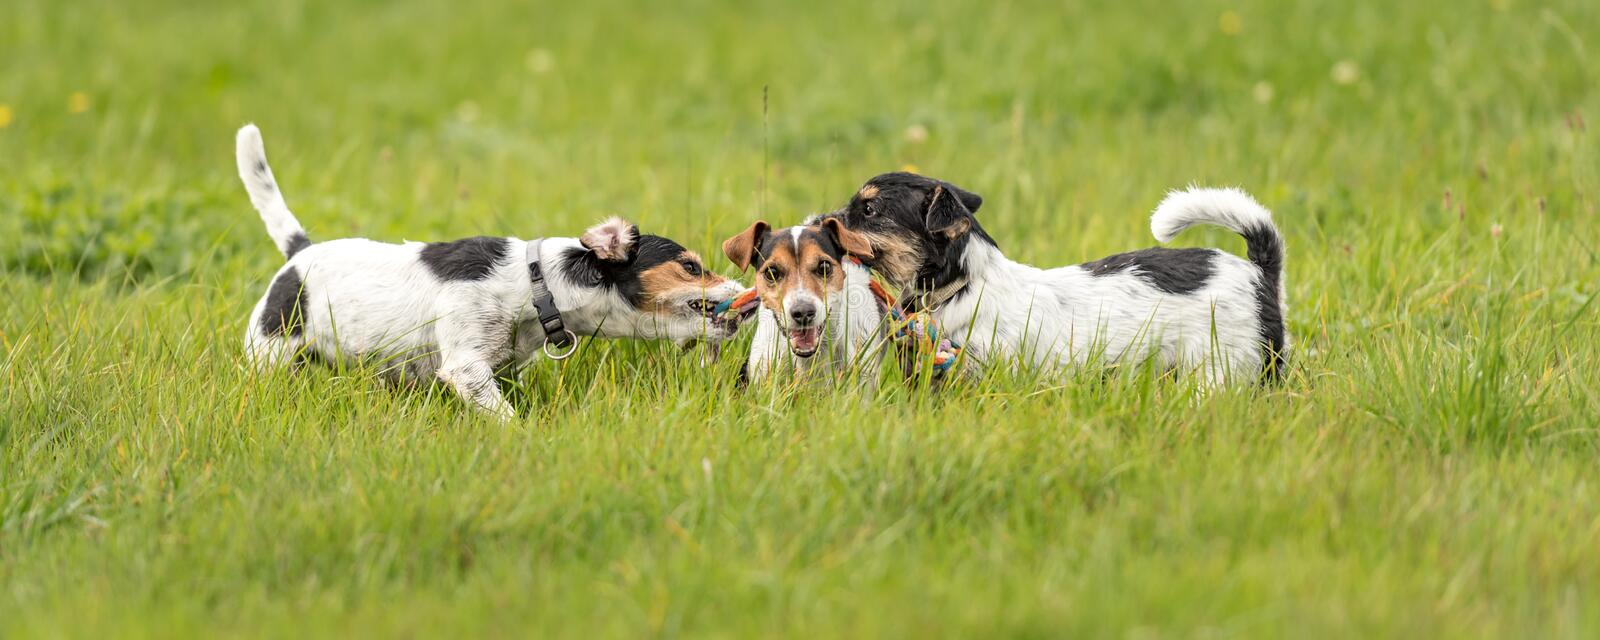 Many dogs run and play with a ball in a meadow - a cute pack of Jack Russell Terriers stock image